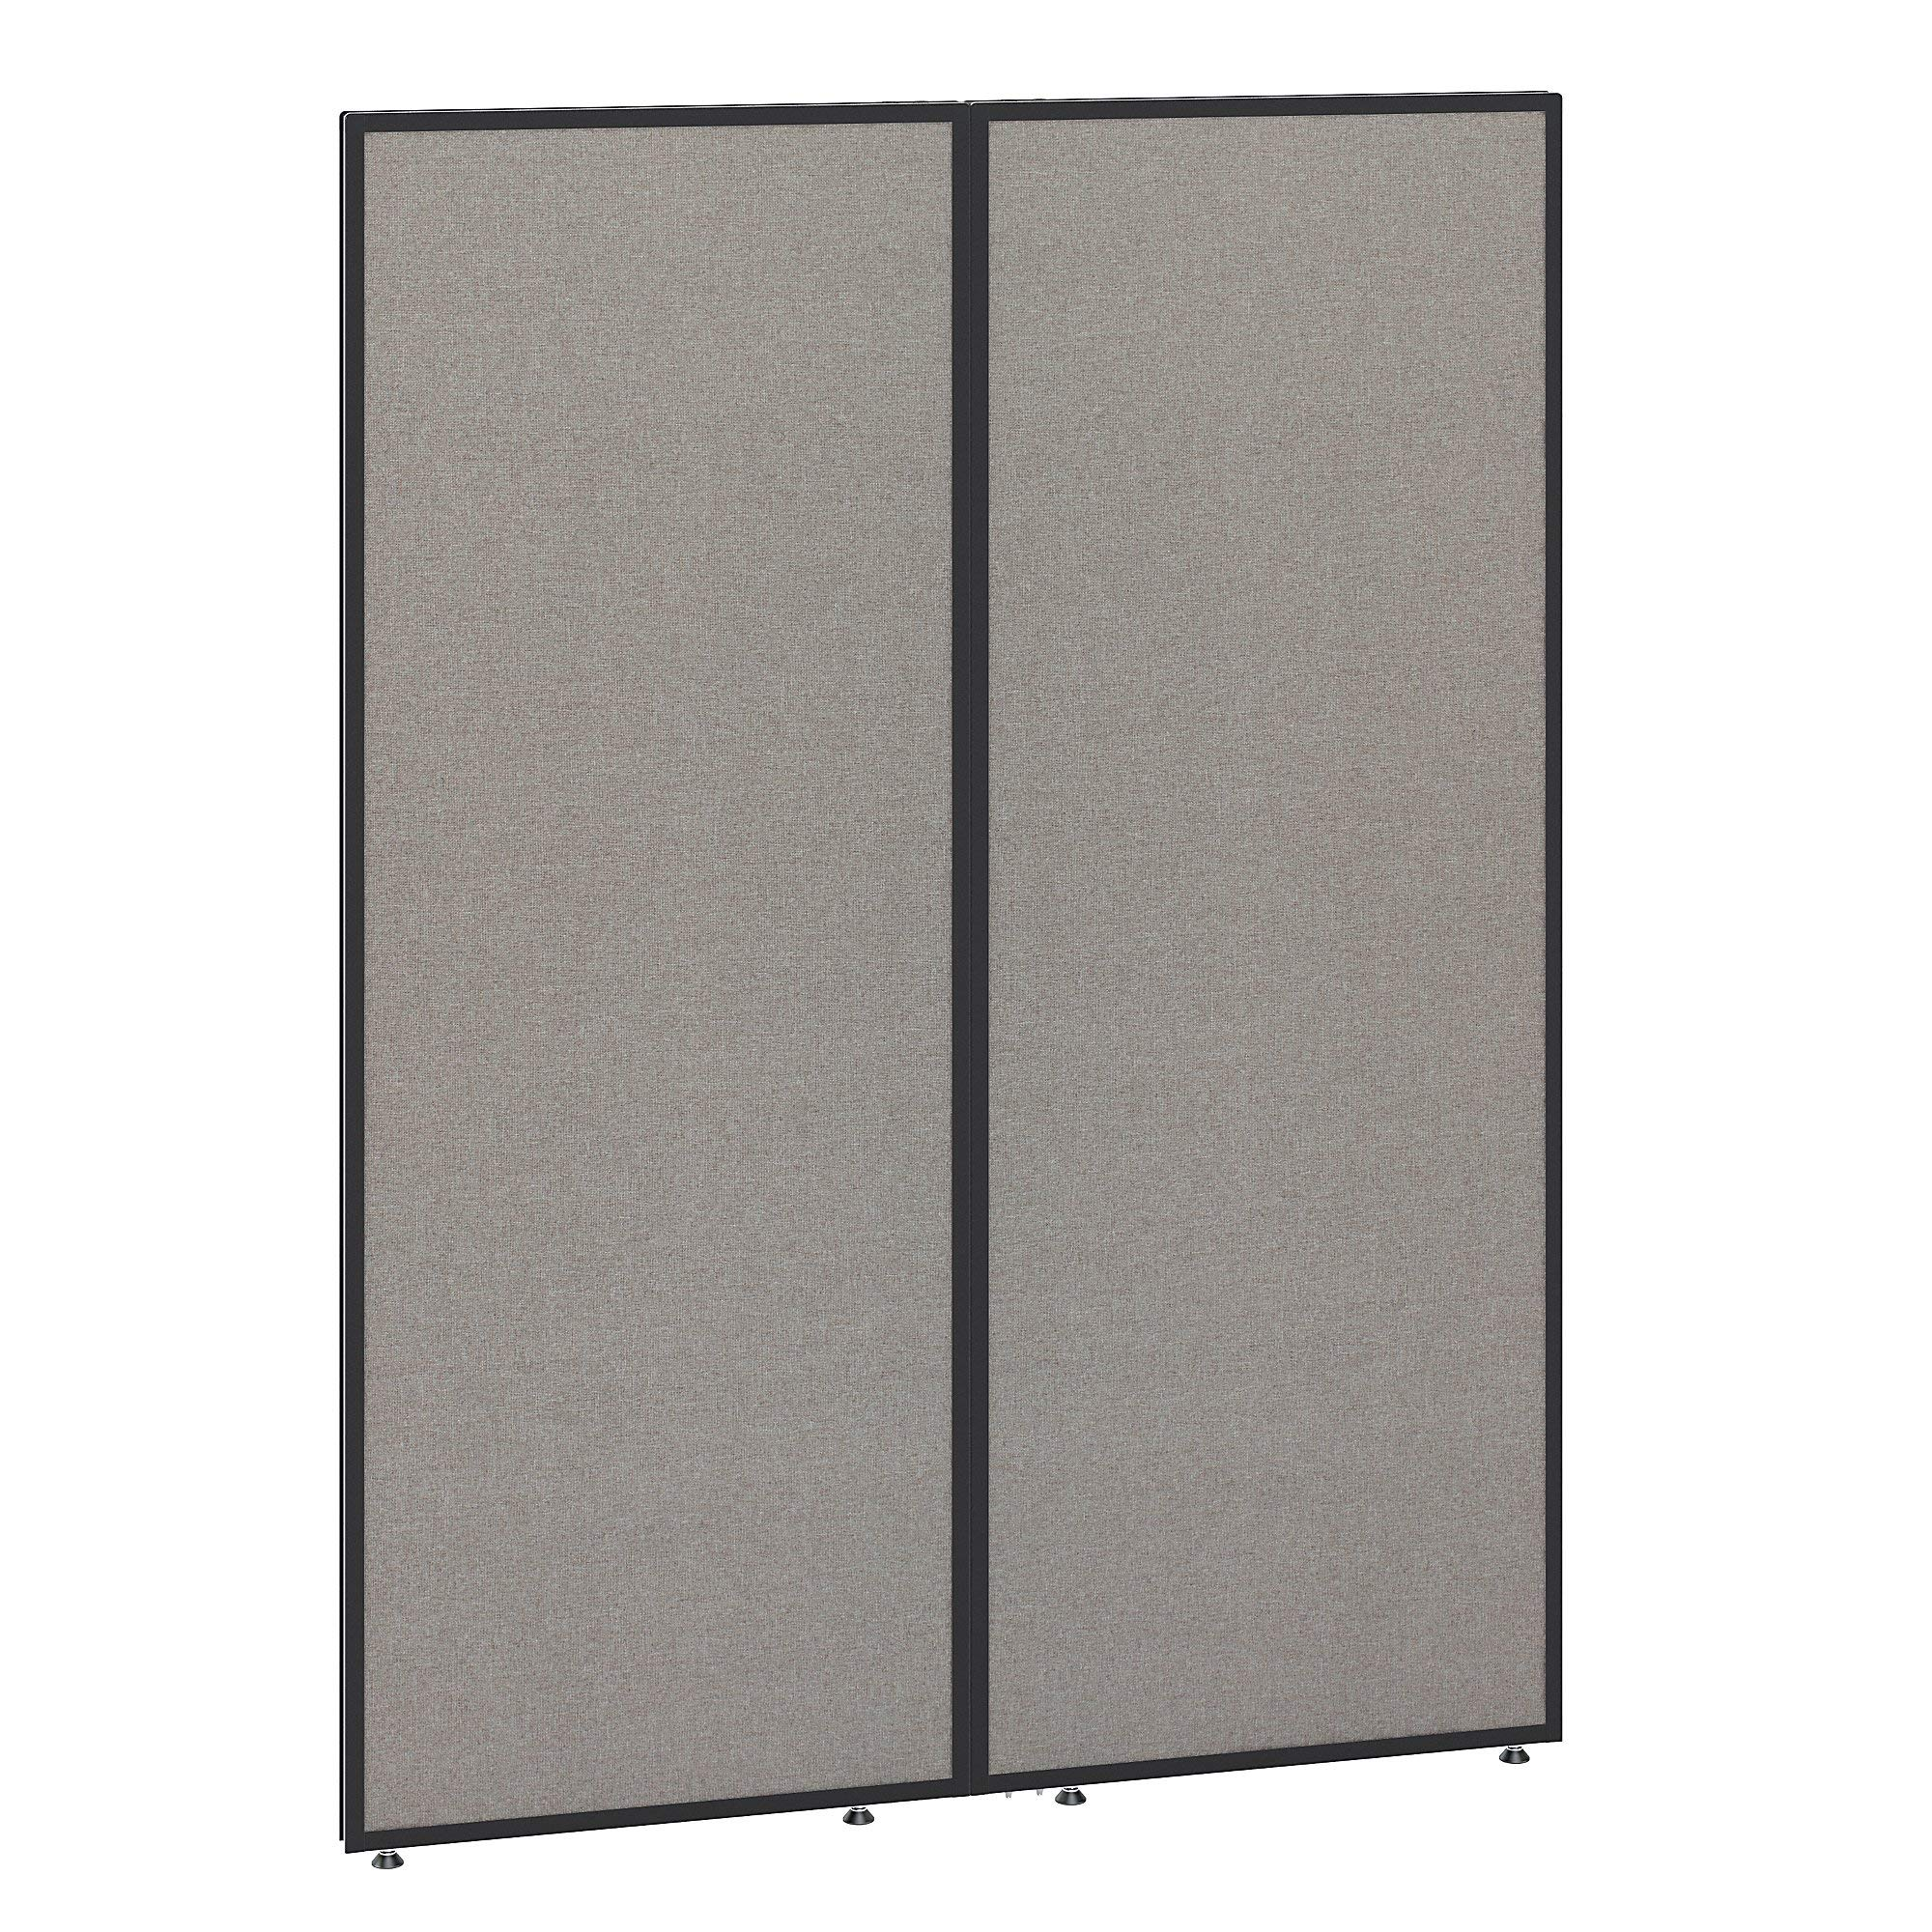 Bush Business Furniture PP66749-03 ProPanels Office Partition, 66H x 48W, Light Gray by Bush Business Furniture (Image #1)